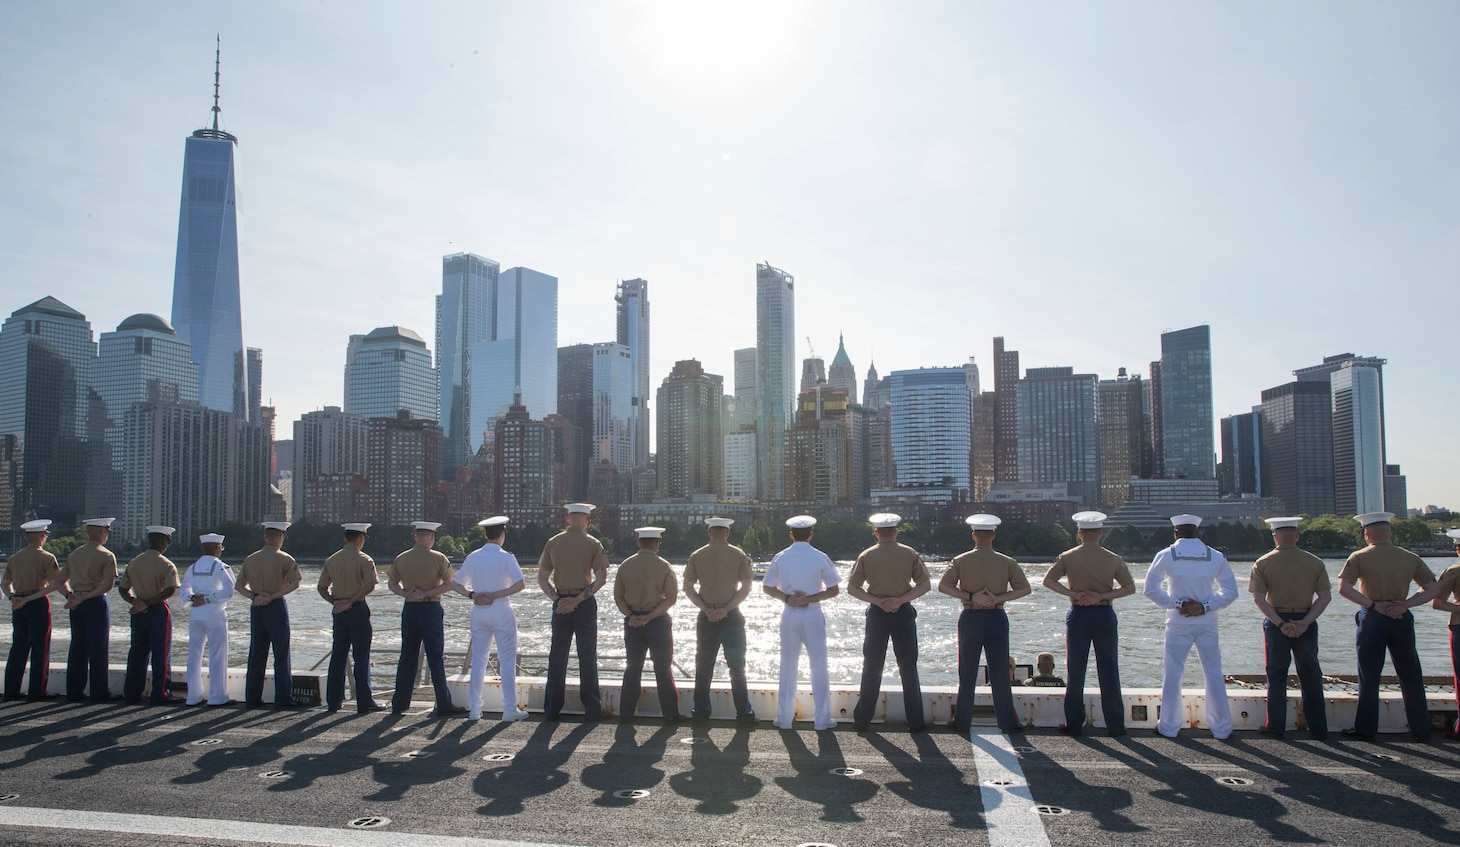 Sailors and Marines man the rails on the flight deck of the amphibious transport dock ship USS New York (LPD 21), as they approach New York City for Fleet Week New York.